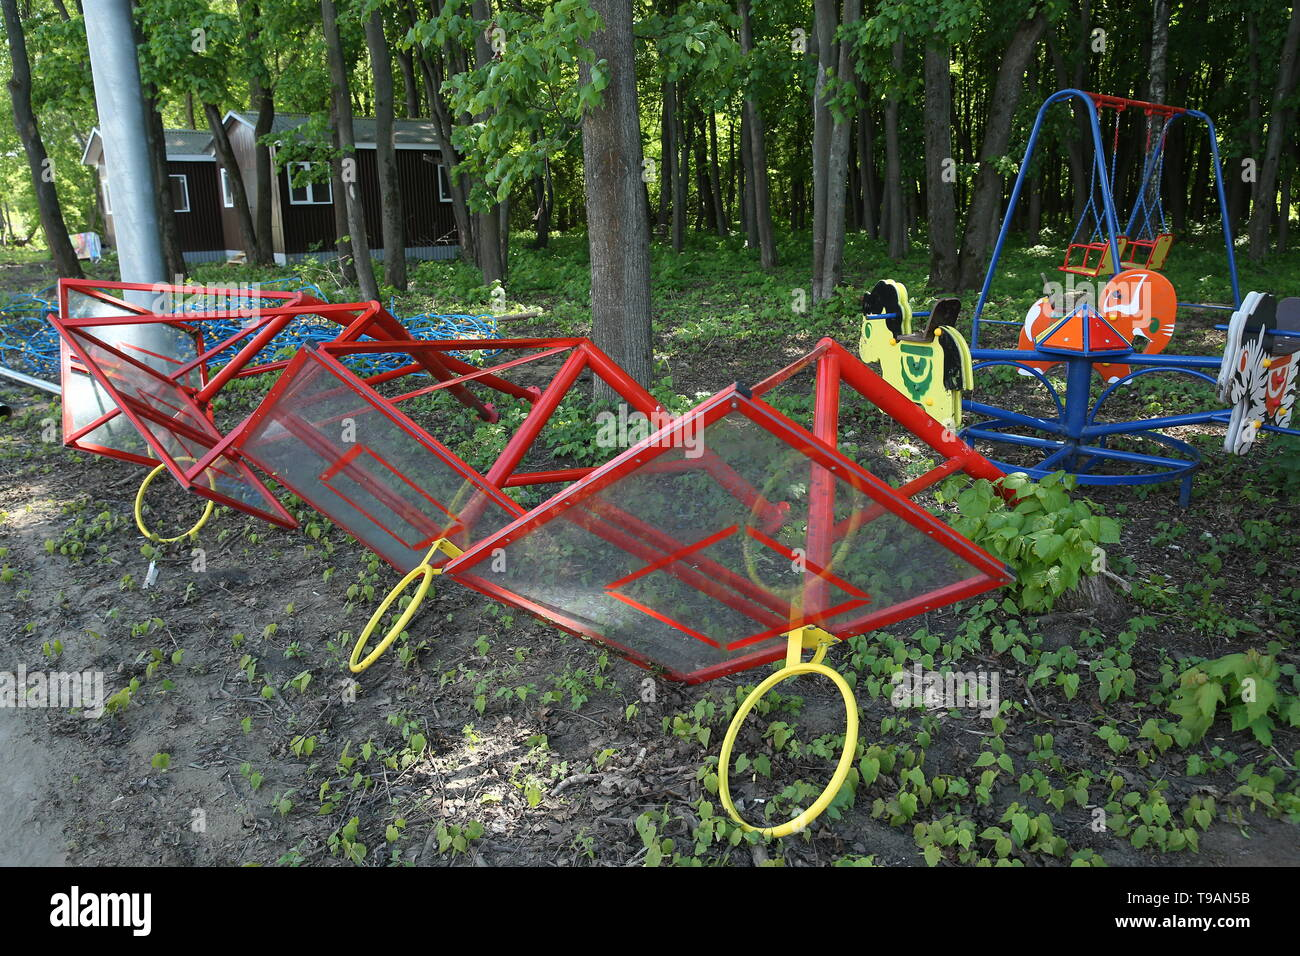 Ryazan, Russia. 17th May, 2019. RYAZAN, RUSSIA - MAY 17, 2019: Uninstalled equipment on a children's playground in Ryazan's Lesopark. On May 16, 2019, journalists complained to Russian President Vladimir Putin about the absence of a children's playground which had been largely funded by the city budget. Alexander Ryumin/TASS Credit: ITAR-TASS News Agency/Alamy Live News - Stock Image